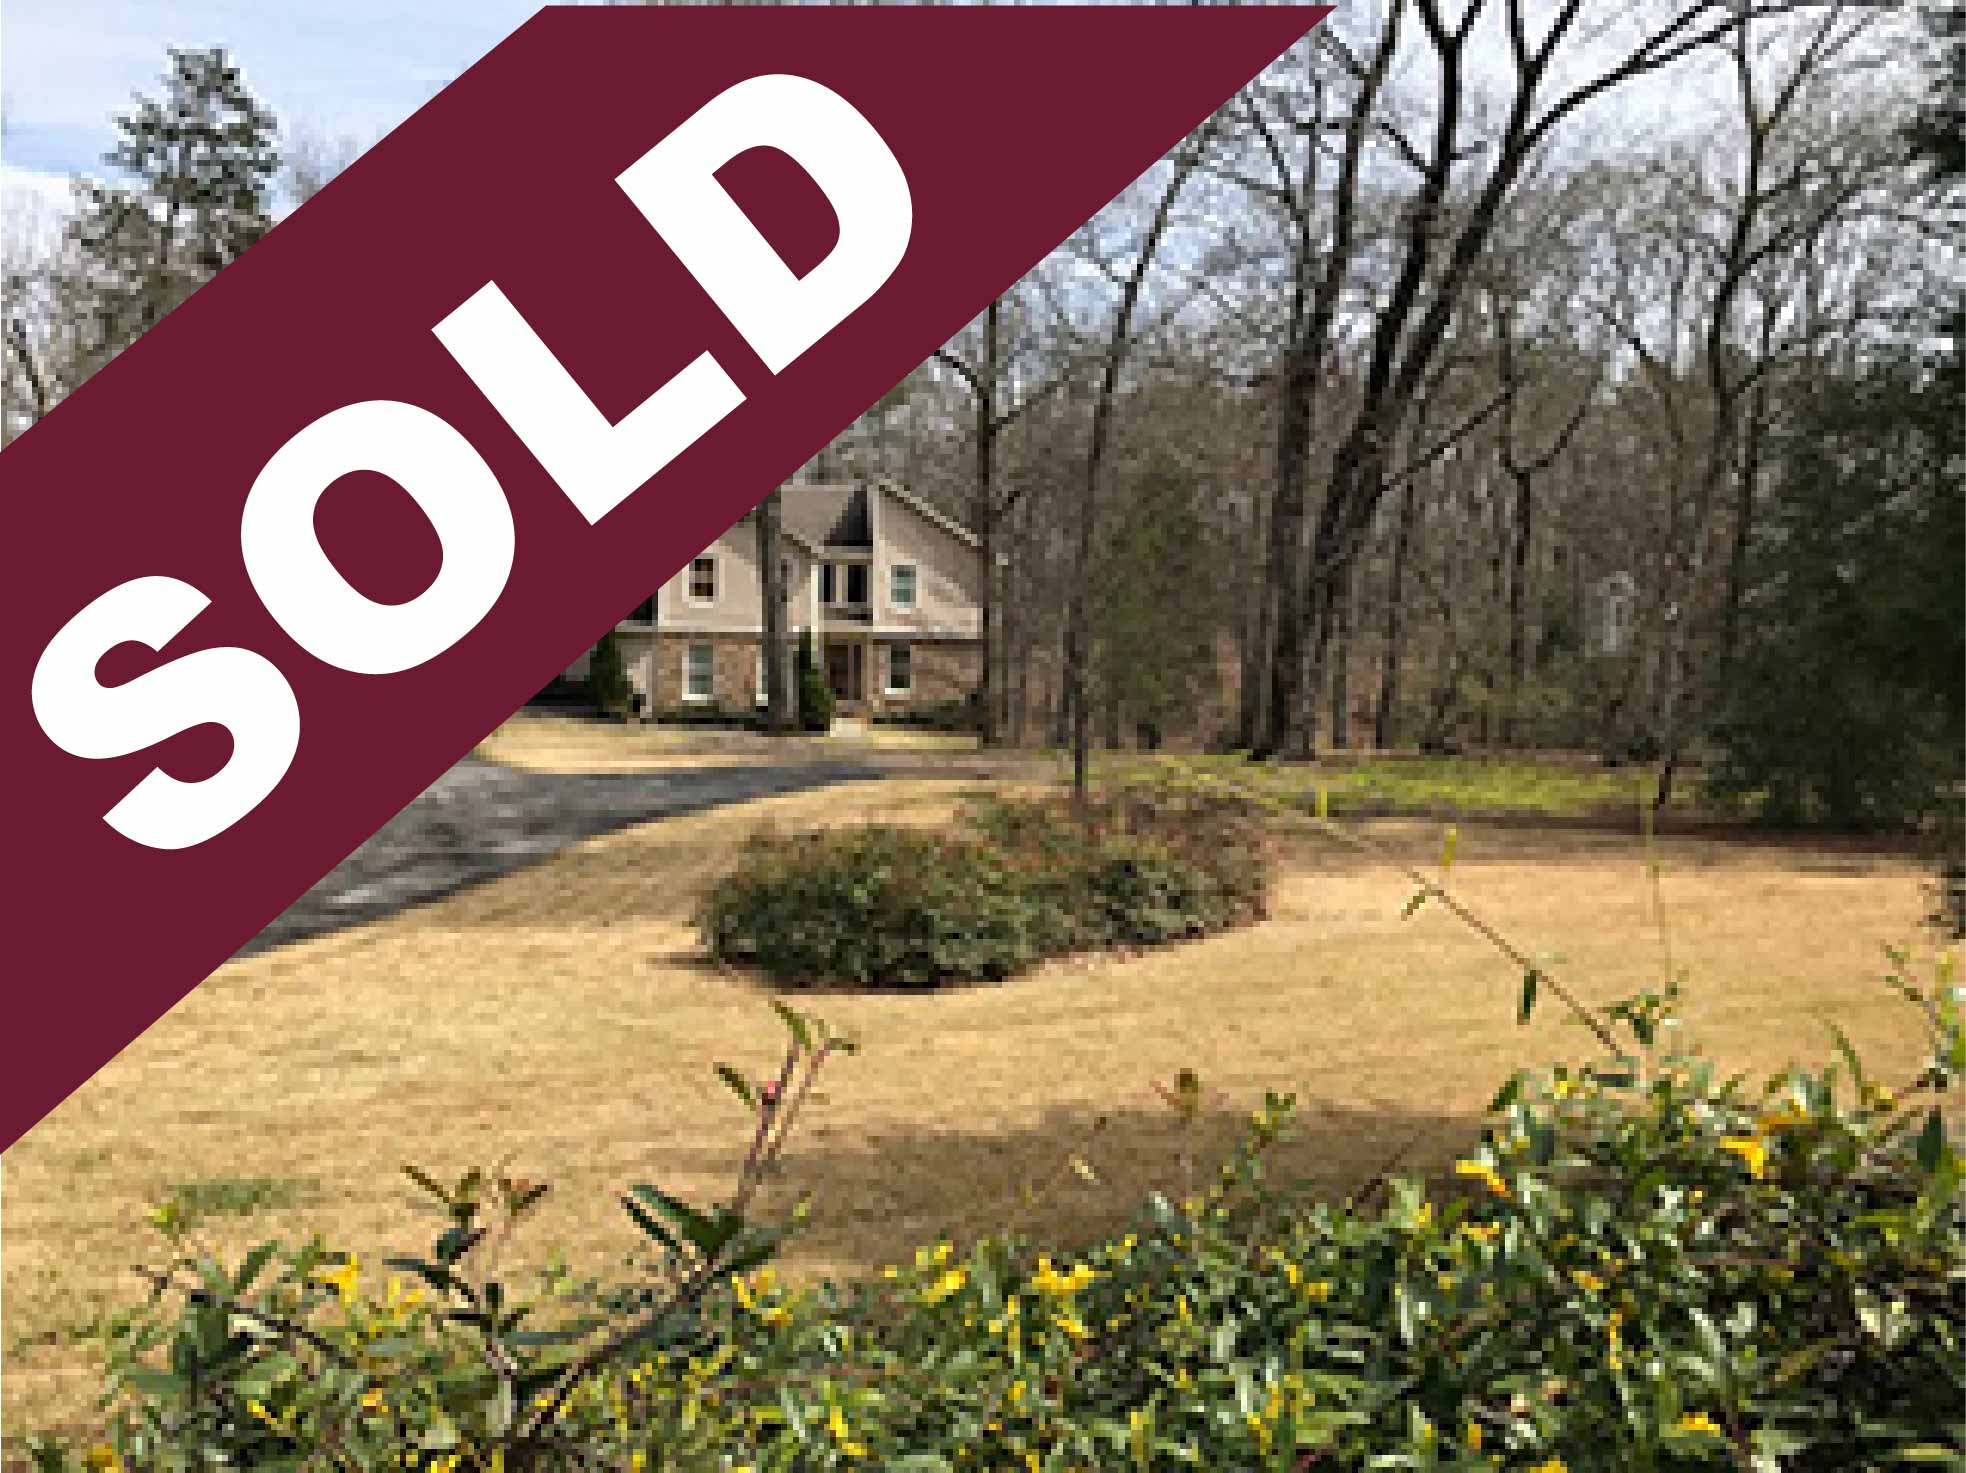 SOLD: 10115 Buice Road  Alpharetta, GA  30022